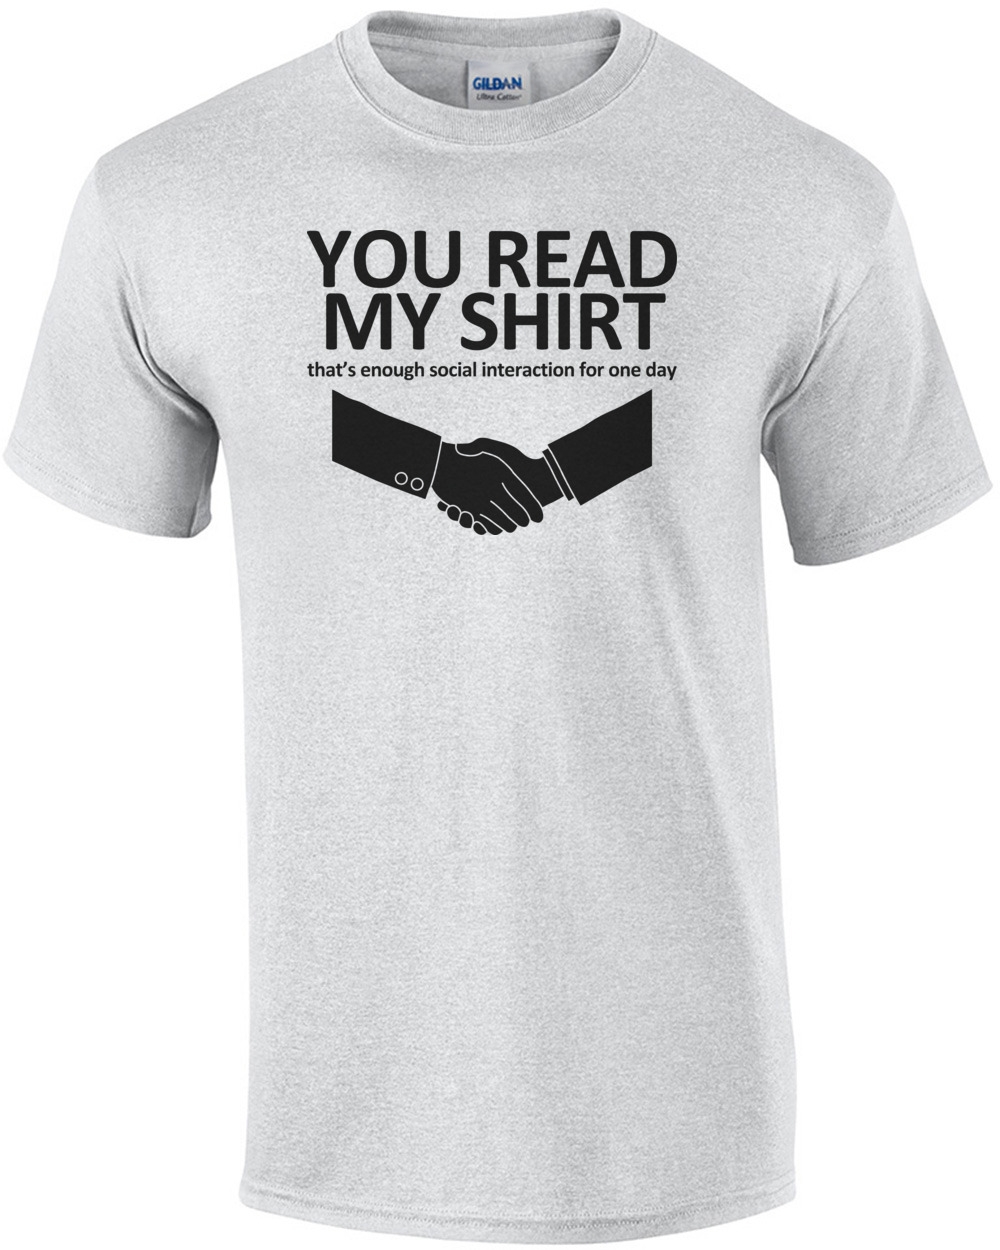 dadfb915107e3 You Read My Shirt, That's Enough Social Interaction T-shirt